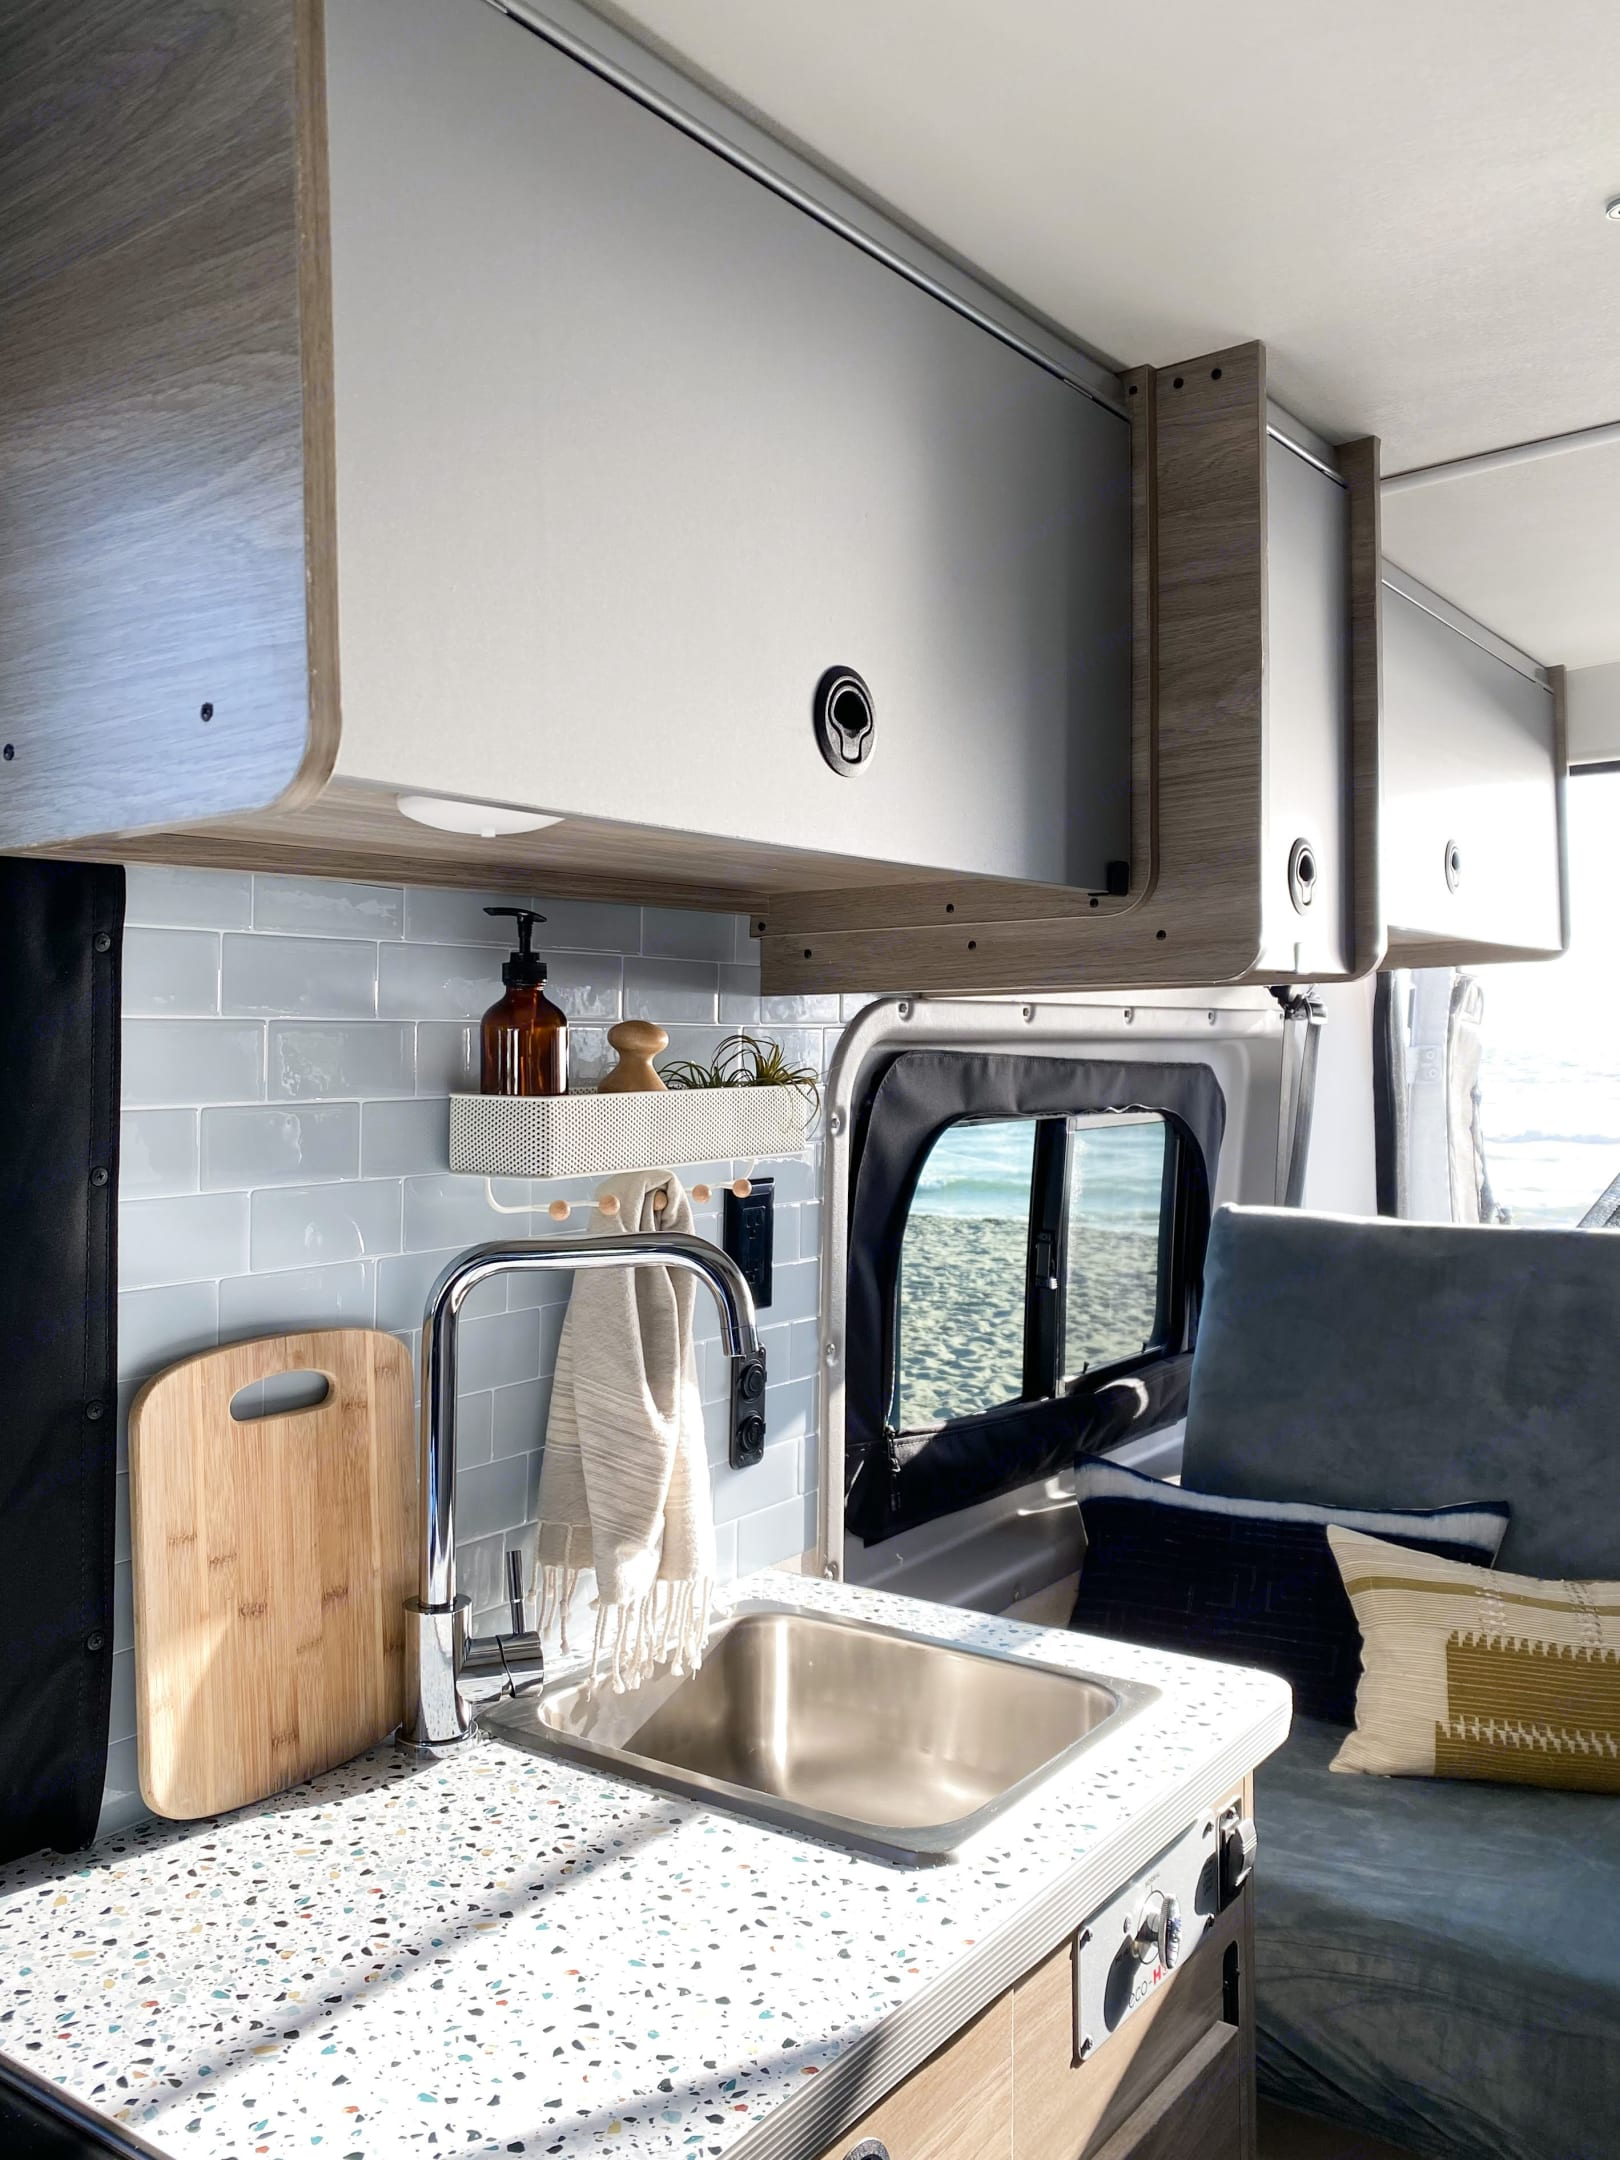 All the amenities you need for your adventure!. Winnebago Solis 2021